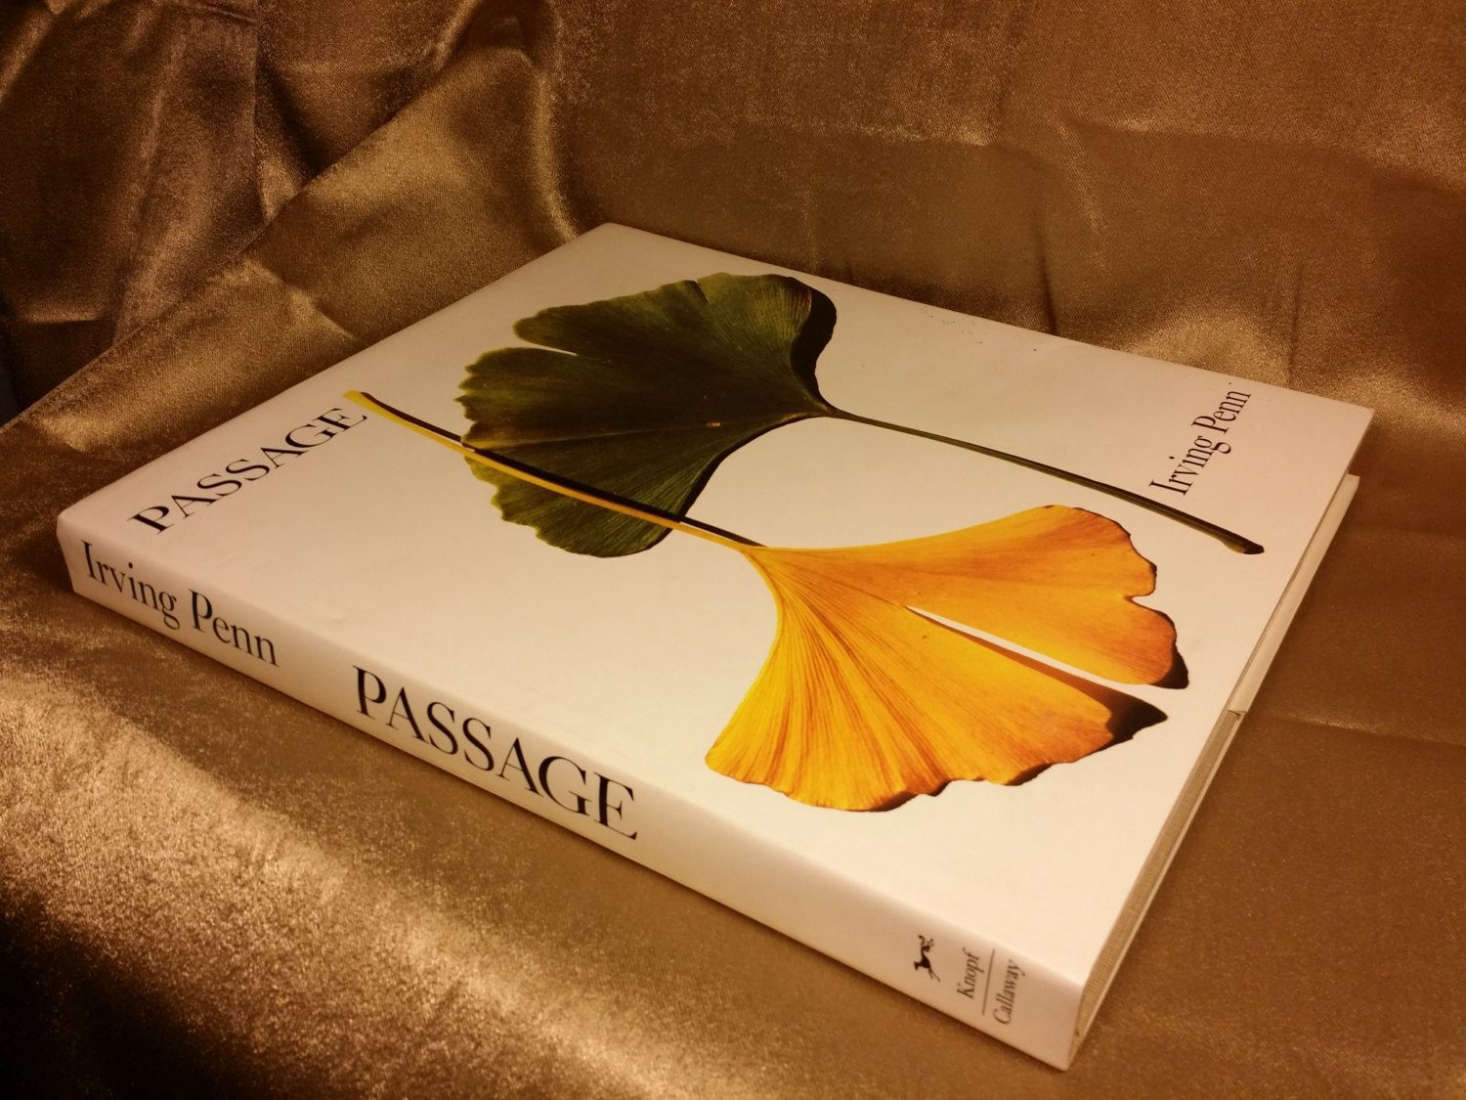 A vintage copy of Passage by Irving Penn is $99.90 from Storenvy.